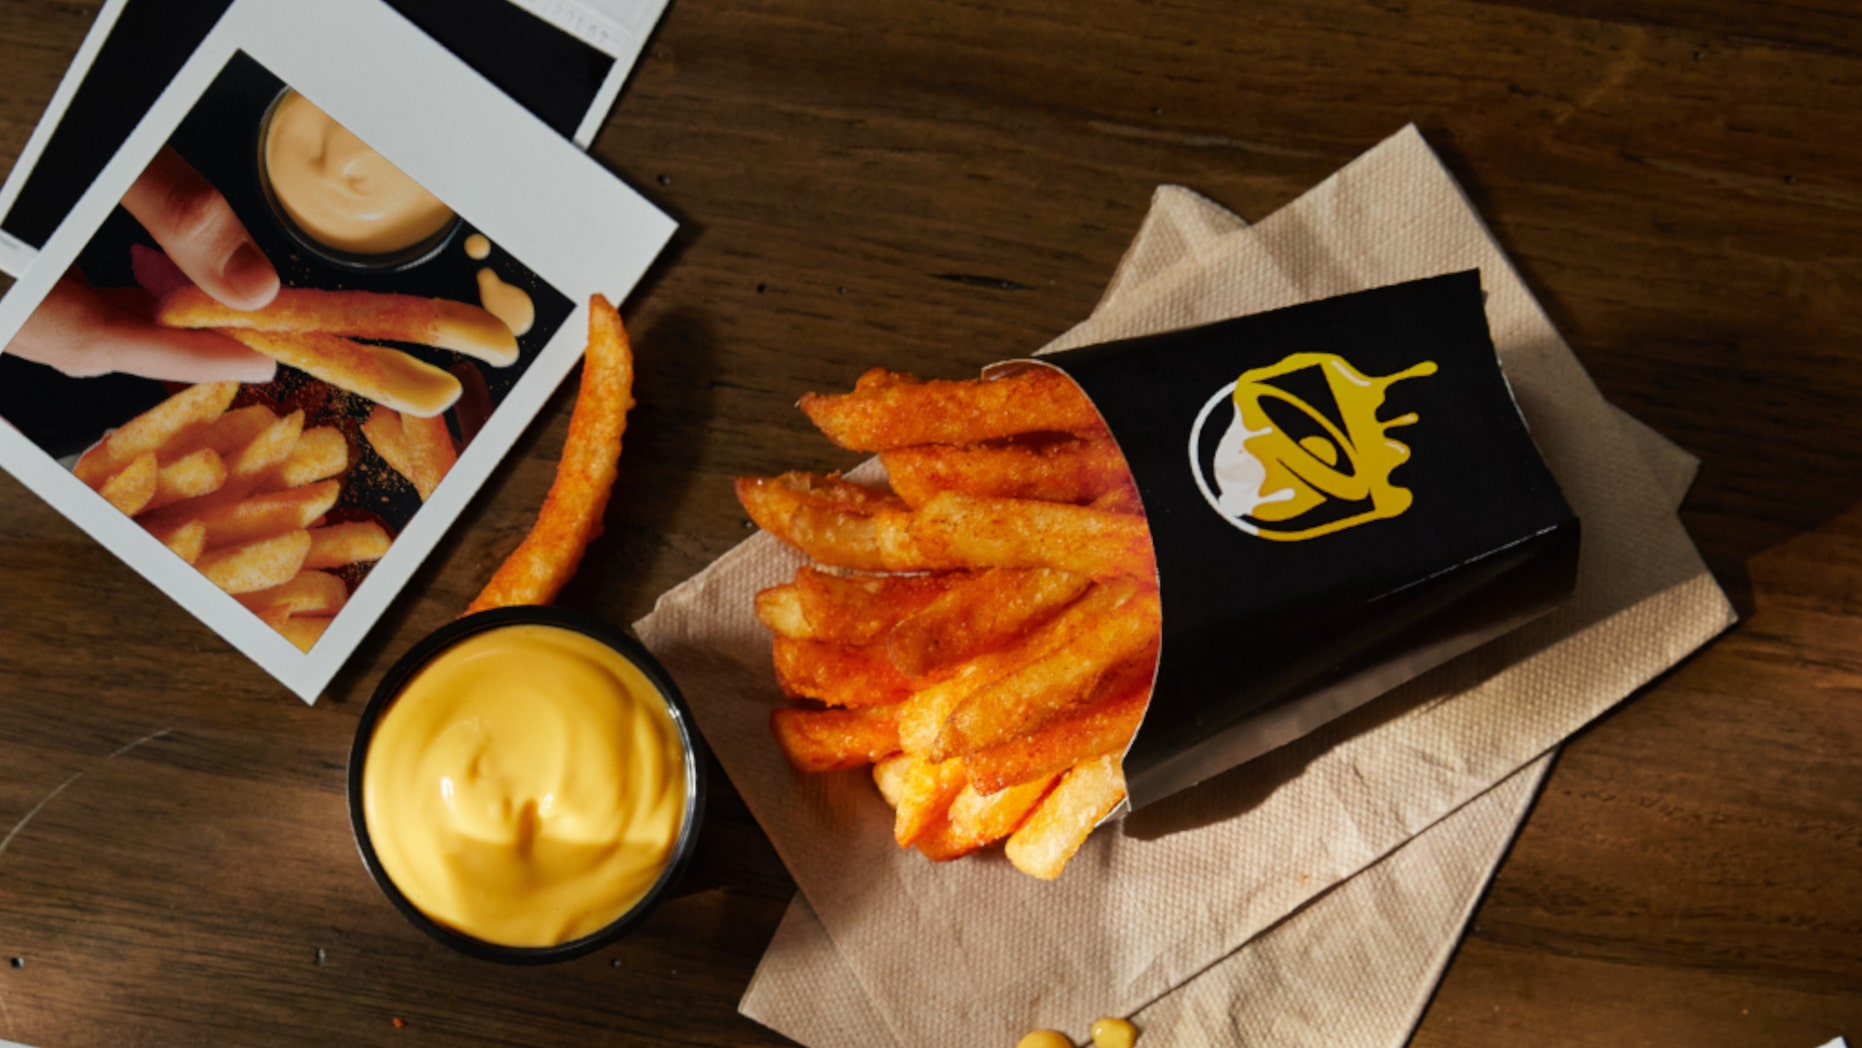 Taco Bell bringing back Nacho Fries on Christmas Eve, for (yet another) limited time